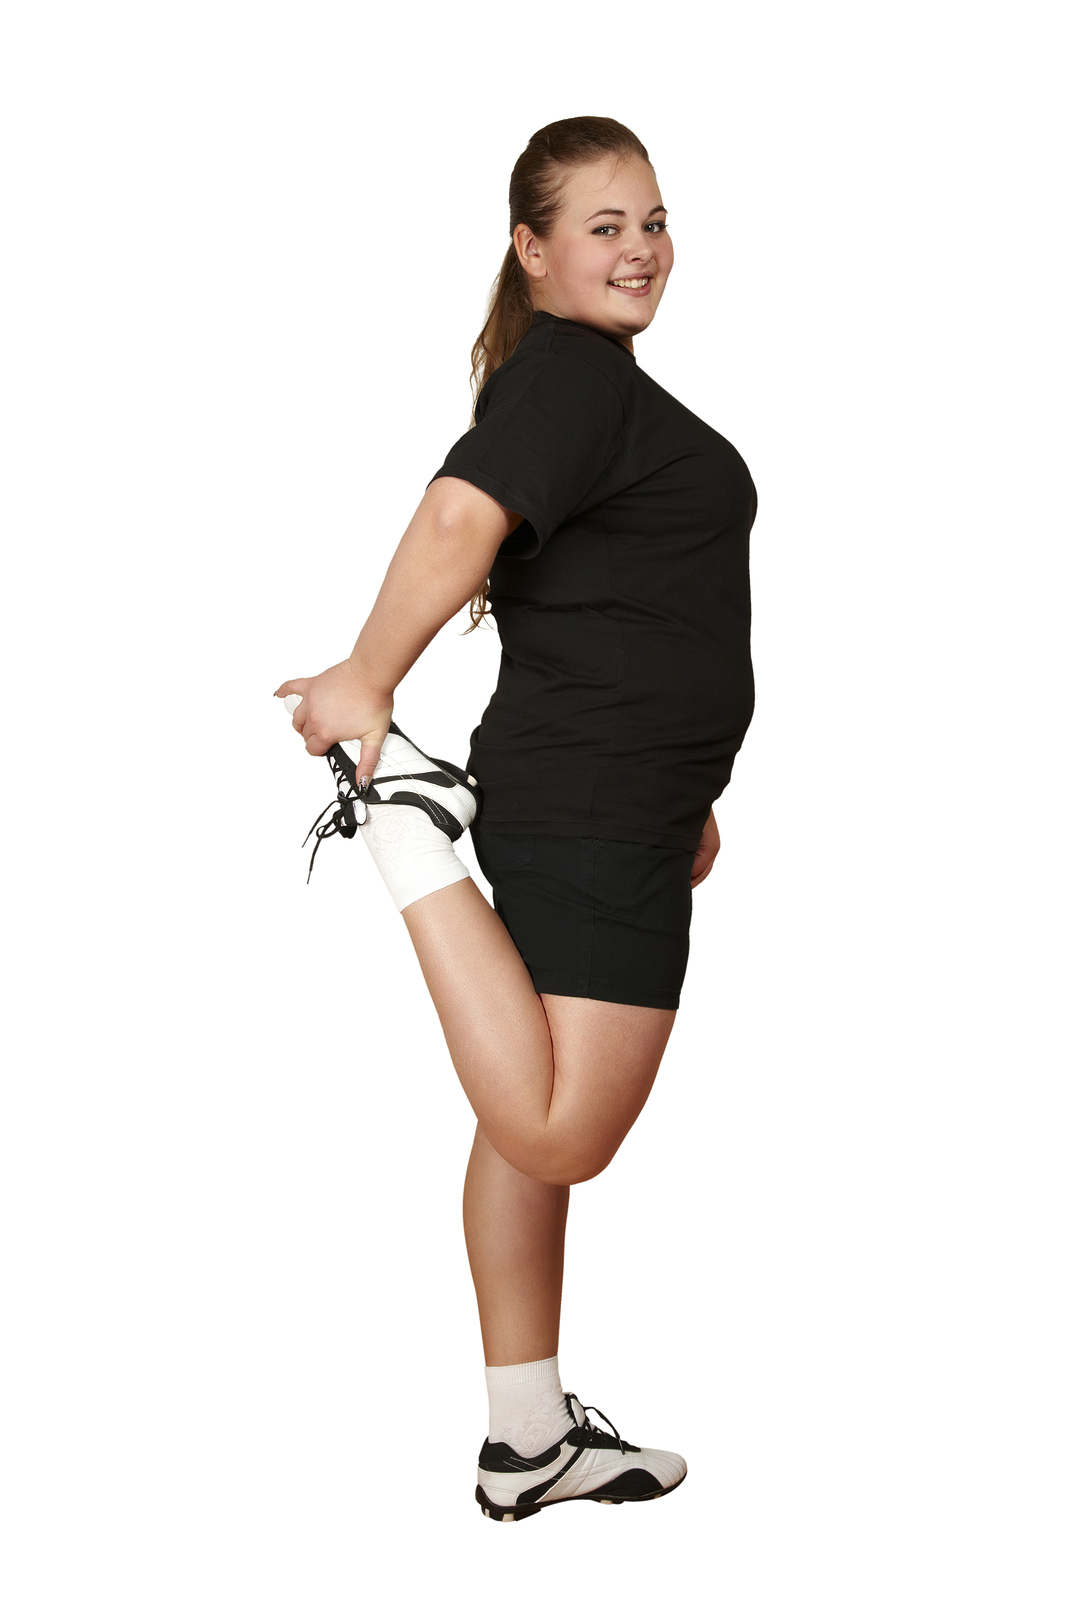 women displaying 17 images for slightly overweight women toolbar